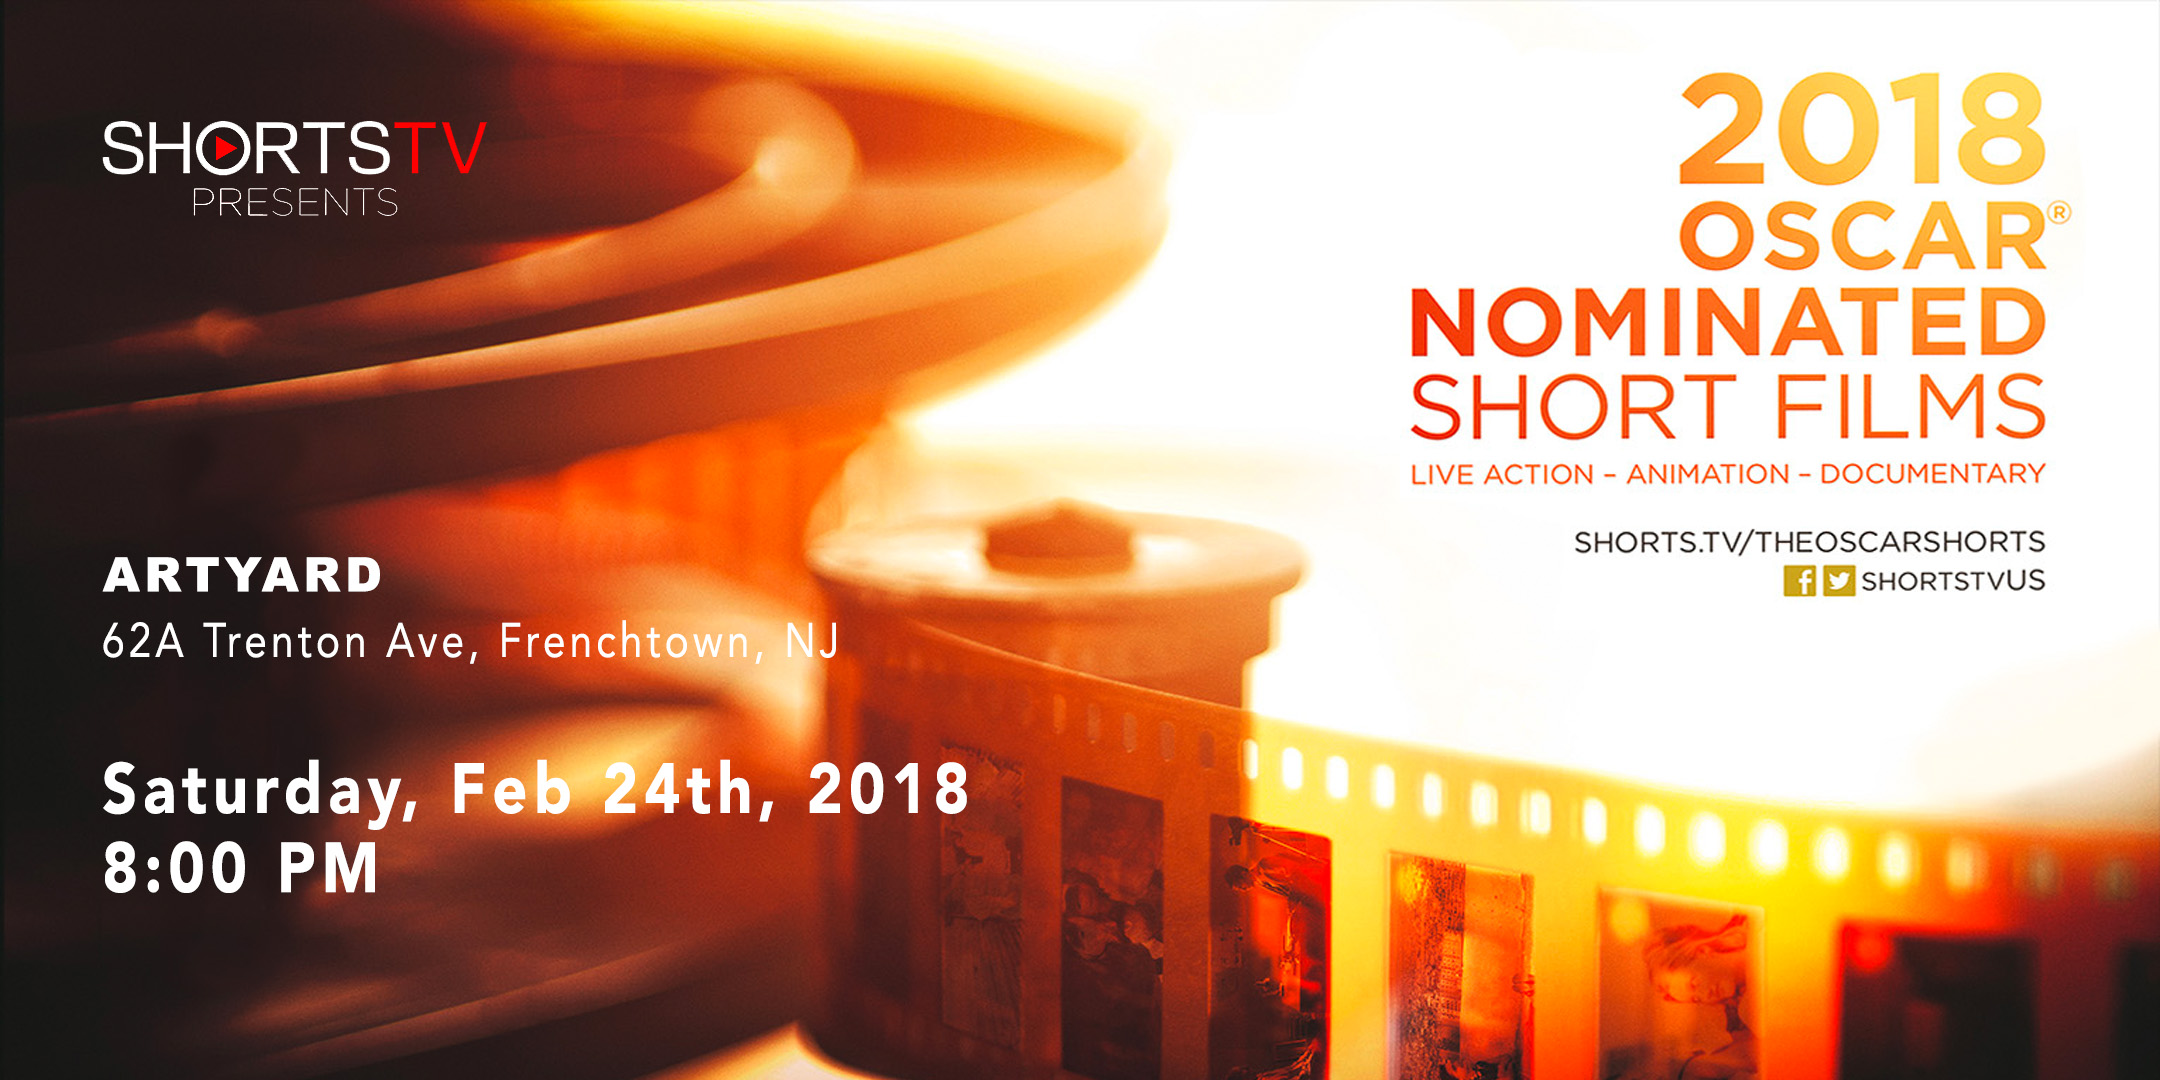 2018 Oscar Nominated Short Films. 8:00 PM SCREENING. @ ArtYard's Theater | Frenchtown | New Jersey | United States